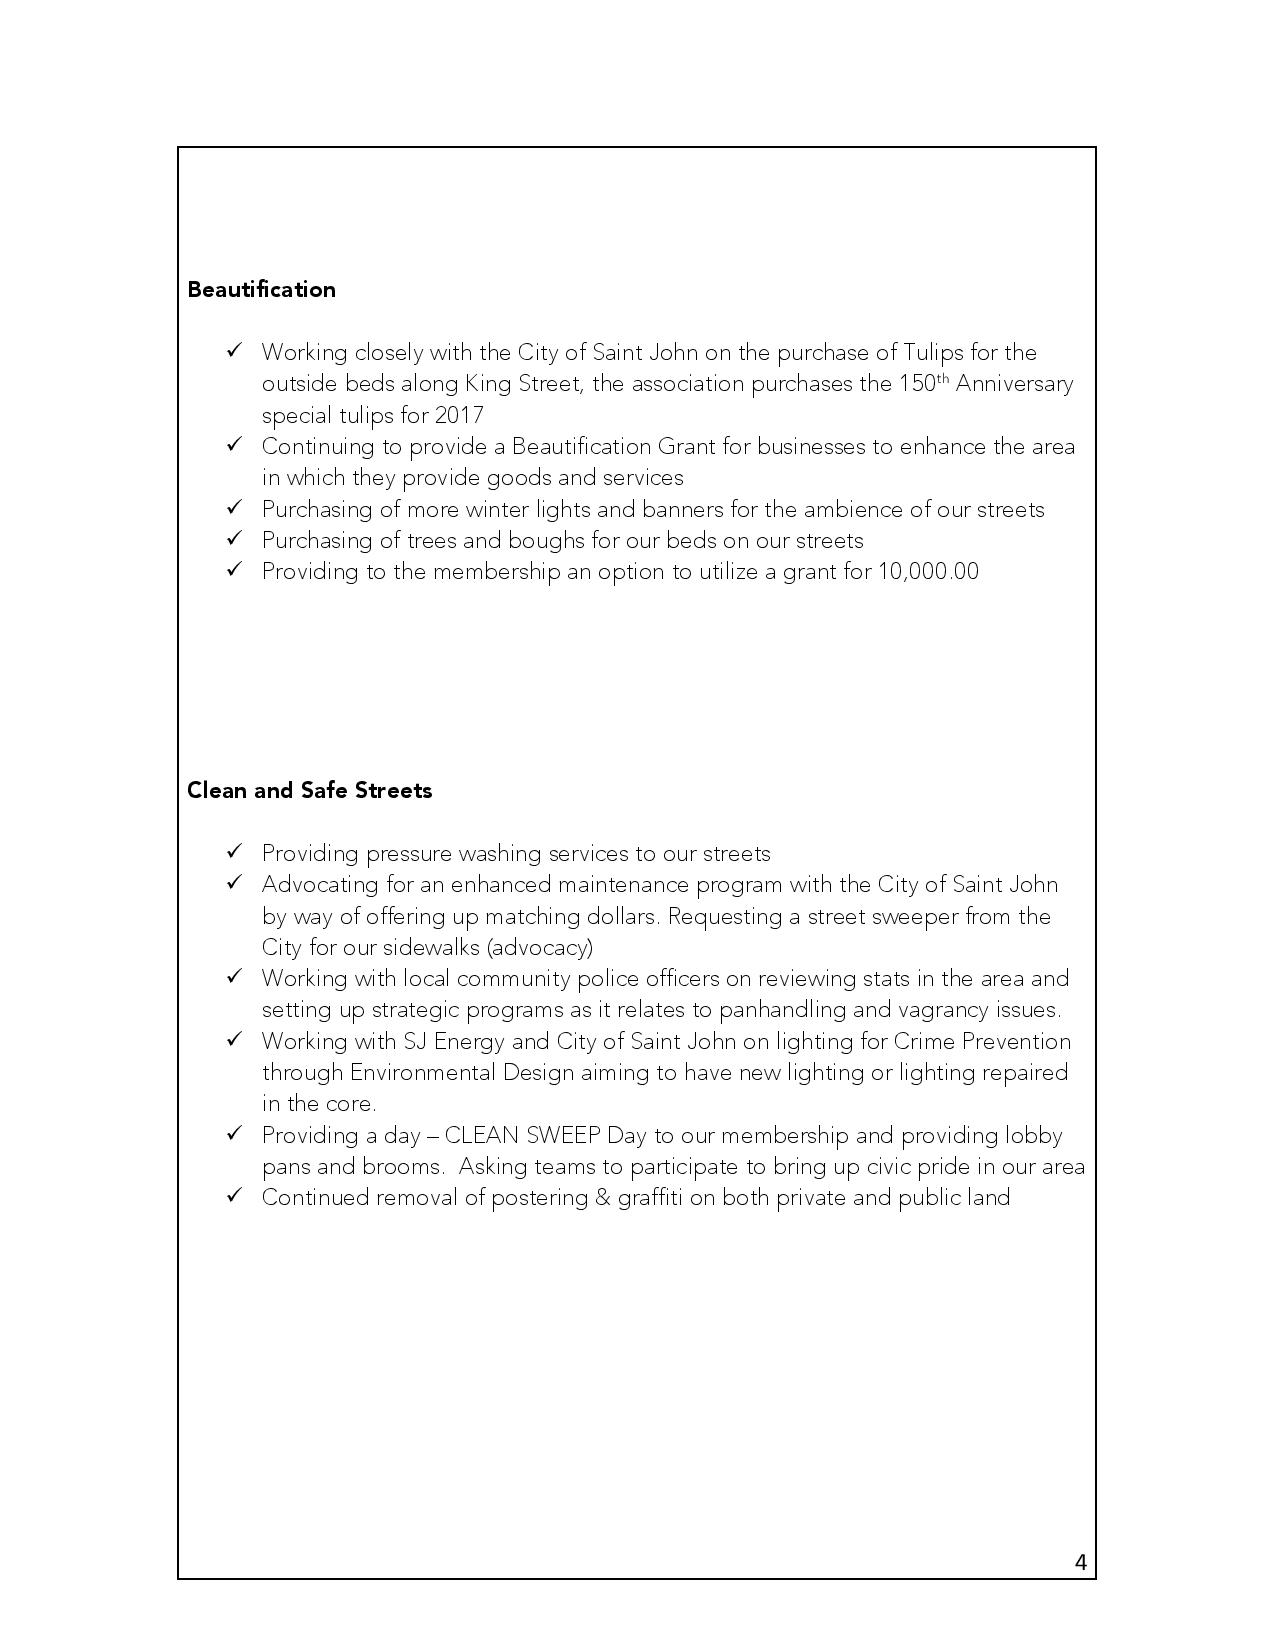 bia-101a-1-page-004